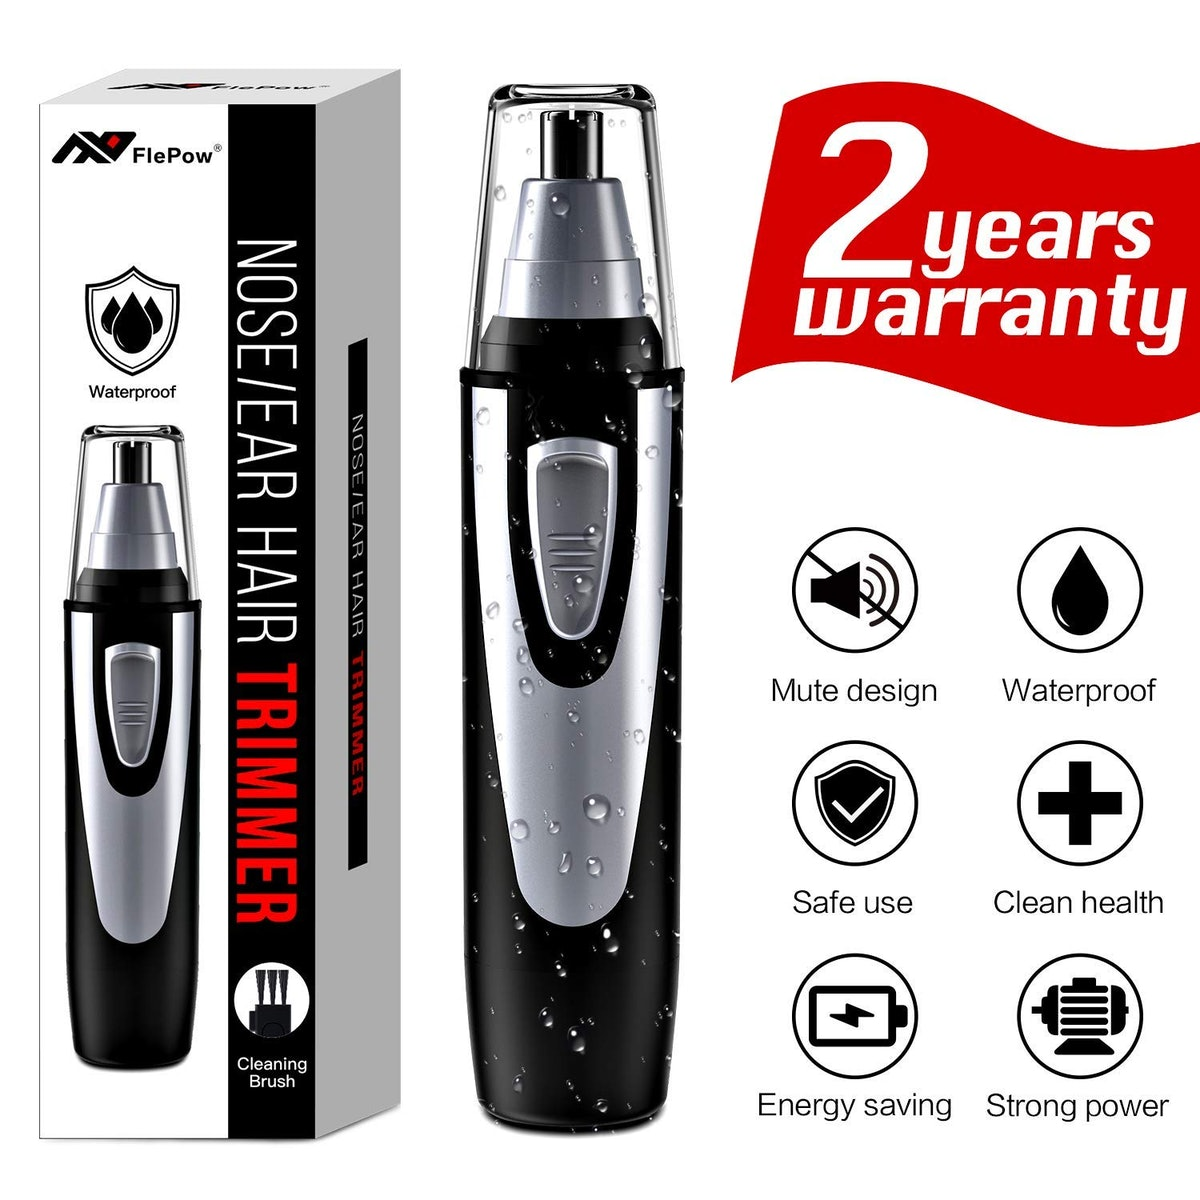 FlePow Ear And Nose Hair Trimmer